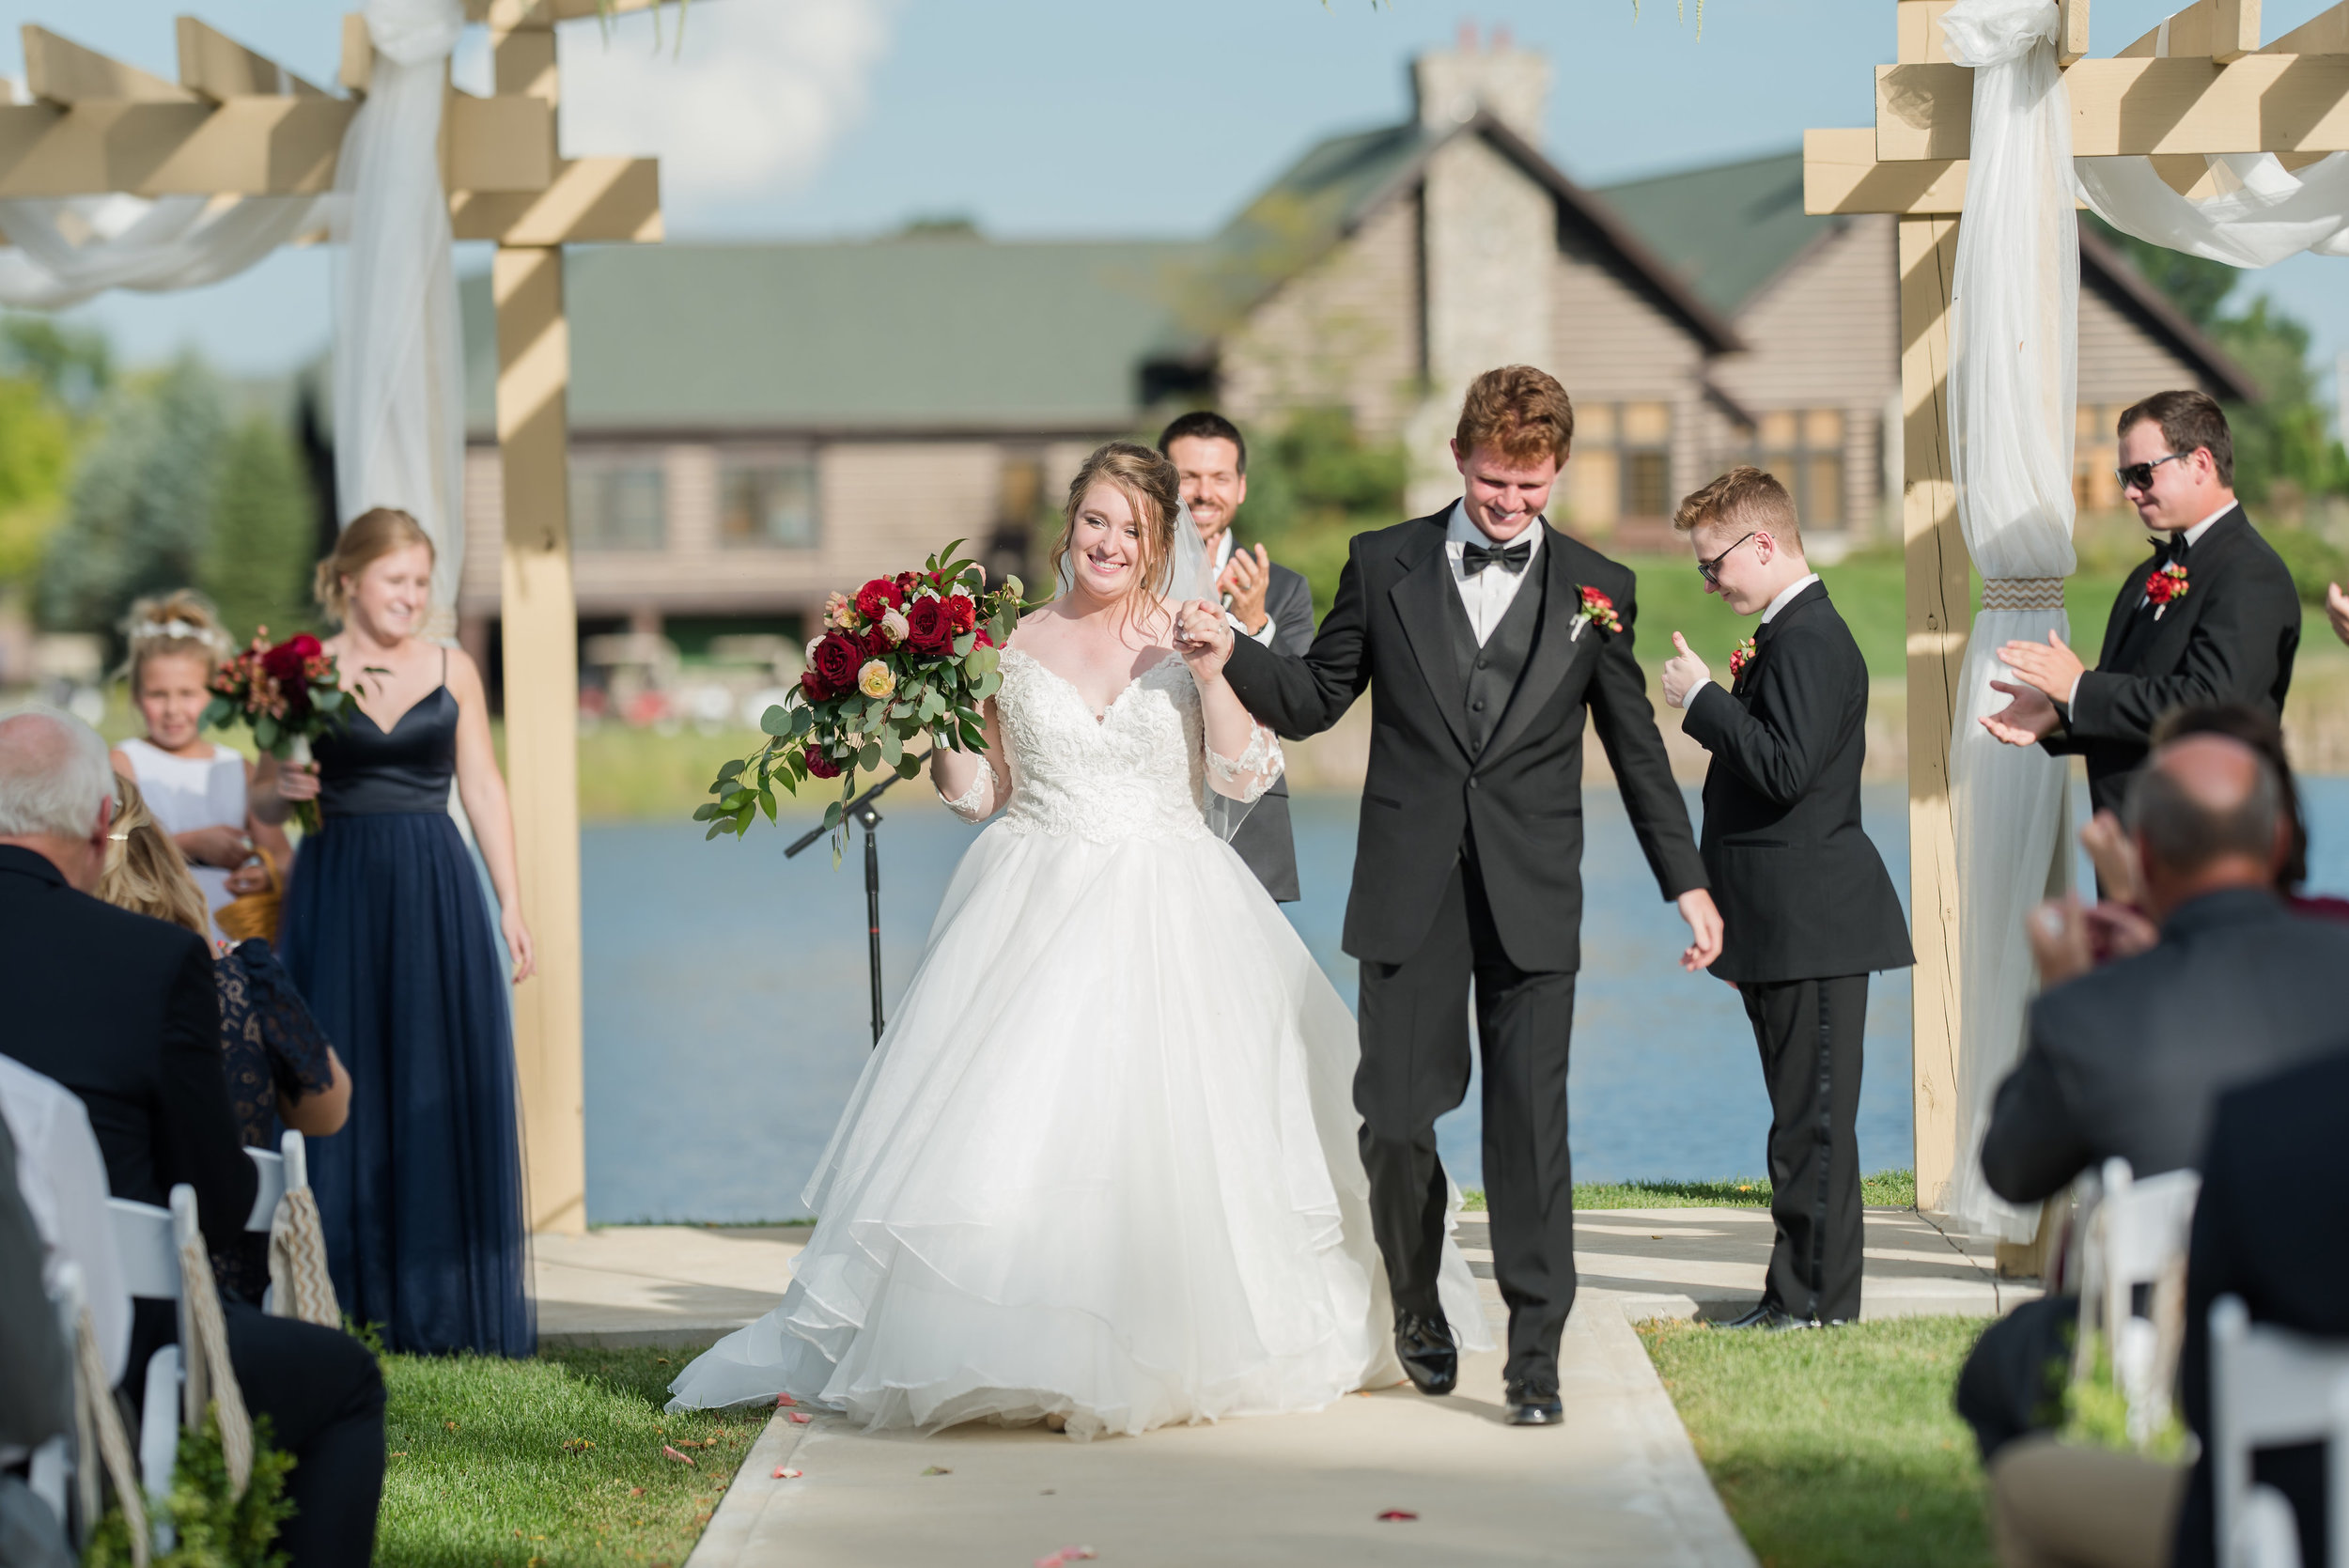 """Bride - """"Best day of my life! And I know it wouldn't have been as amazing without Allison Davis making sure everything went perfectly! Forever thankful for Royal Weddings and Events (Allison <3)""""— Isabel, 2018"""